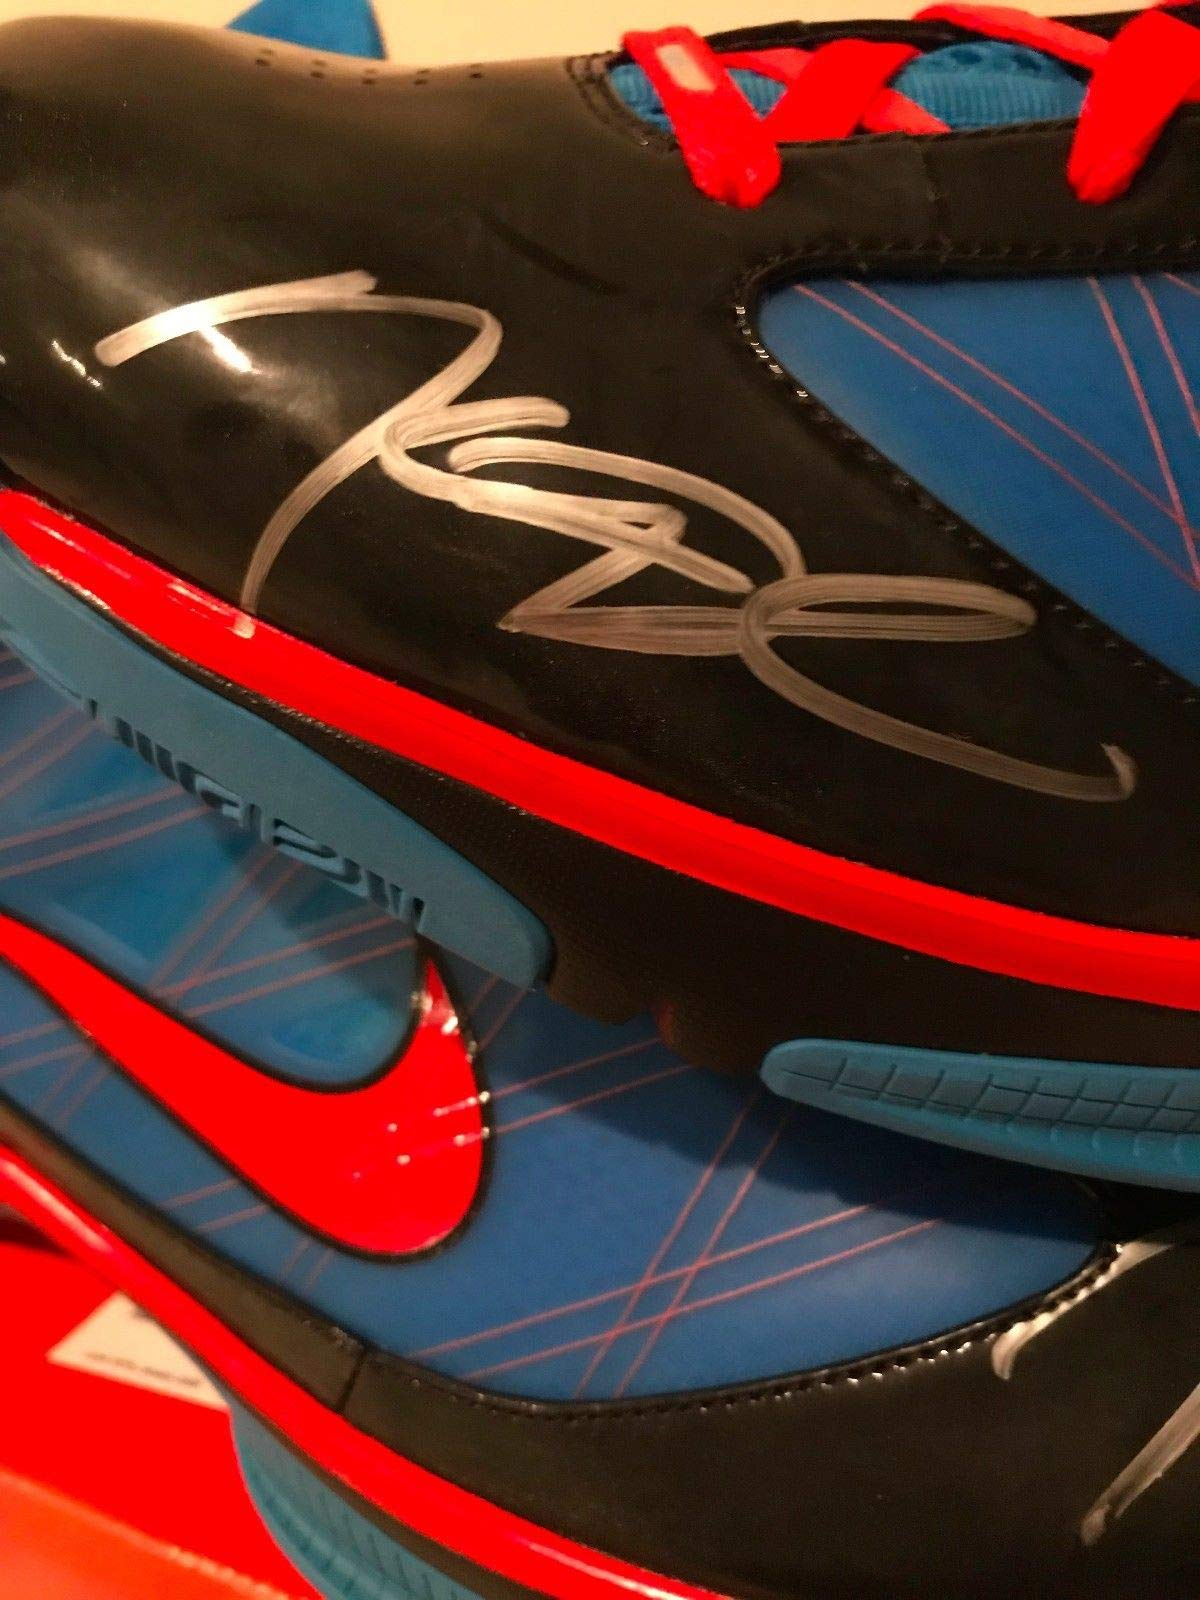 Kevin Kd Durant Autographed Signed Game Issued Nike Hyperize Sneakers Shoes Size 18 PSA/DNA Authentic